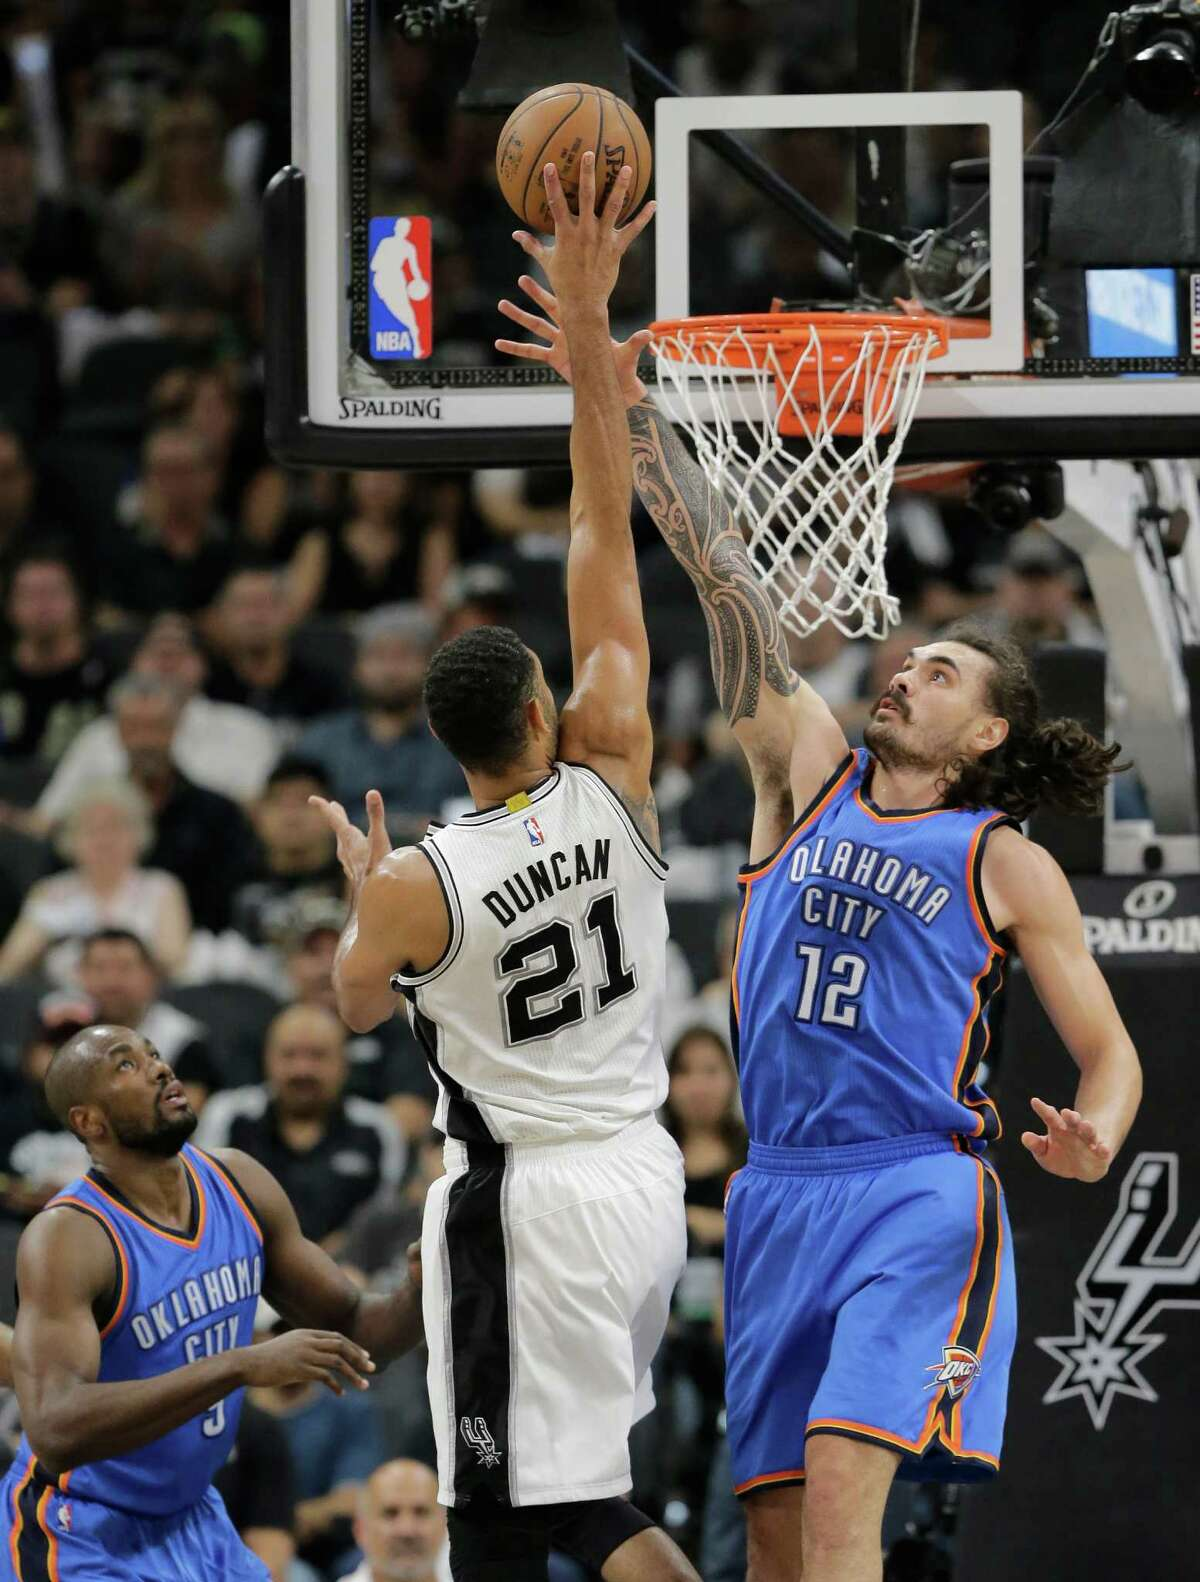 San Antonio Spurs forward Tim Duncan (21) shoots over Oklahoma City Thunder center Steven Adams (12) during the first half in Game 5 of a second-round NBA basketball playoff series, Tuesday, May 10, 2016, in San Antonio. (AP Photo/Eric Gay)